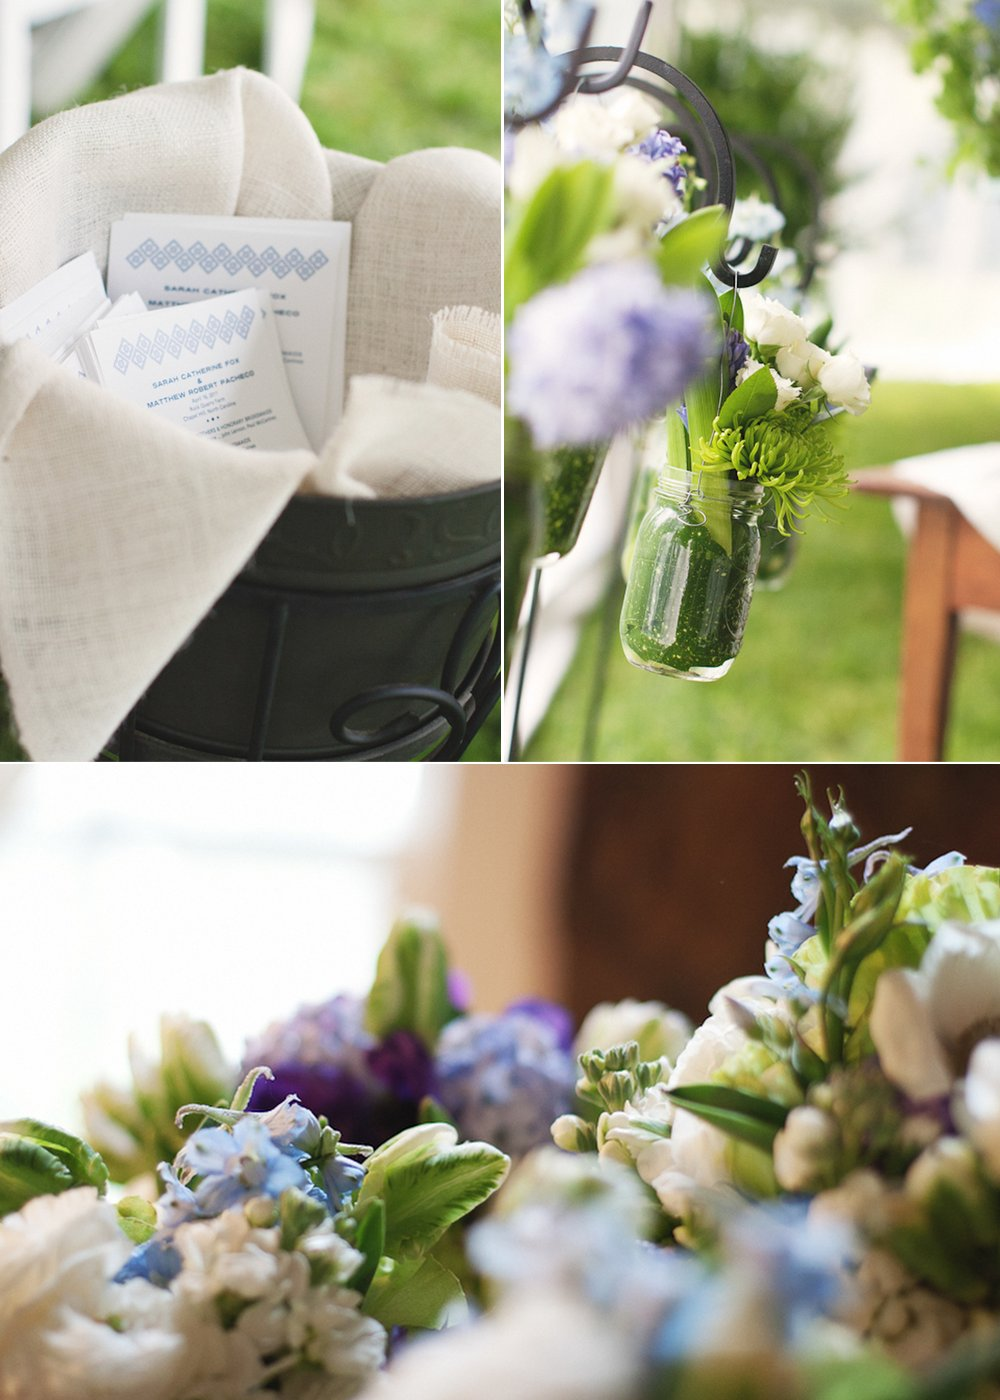 Wedding-flower-ideas-inspiration-rustic-chic-real-wedding-outdoor-venue.full